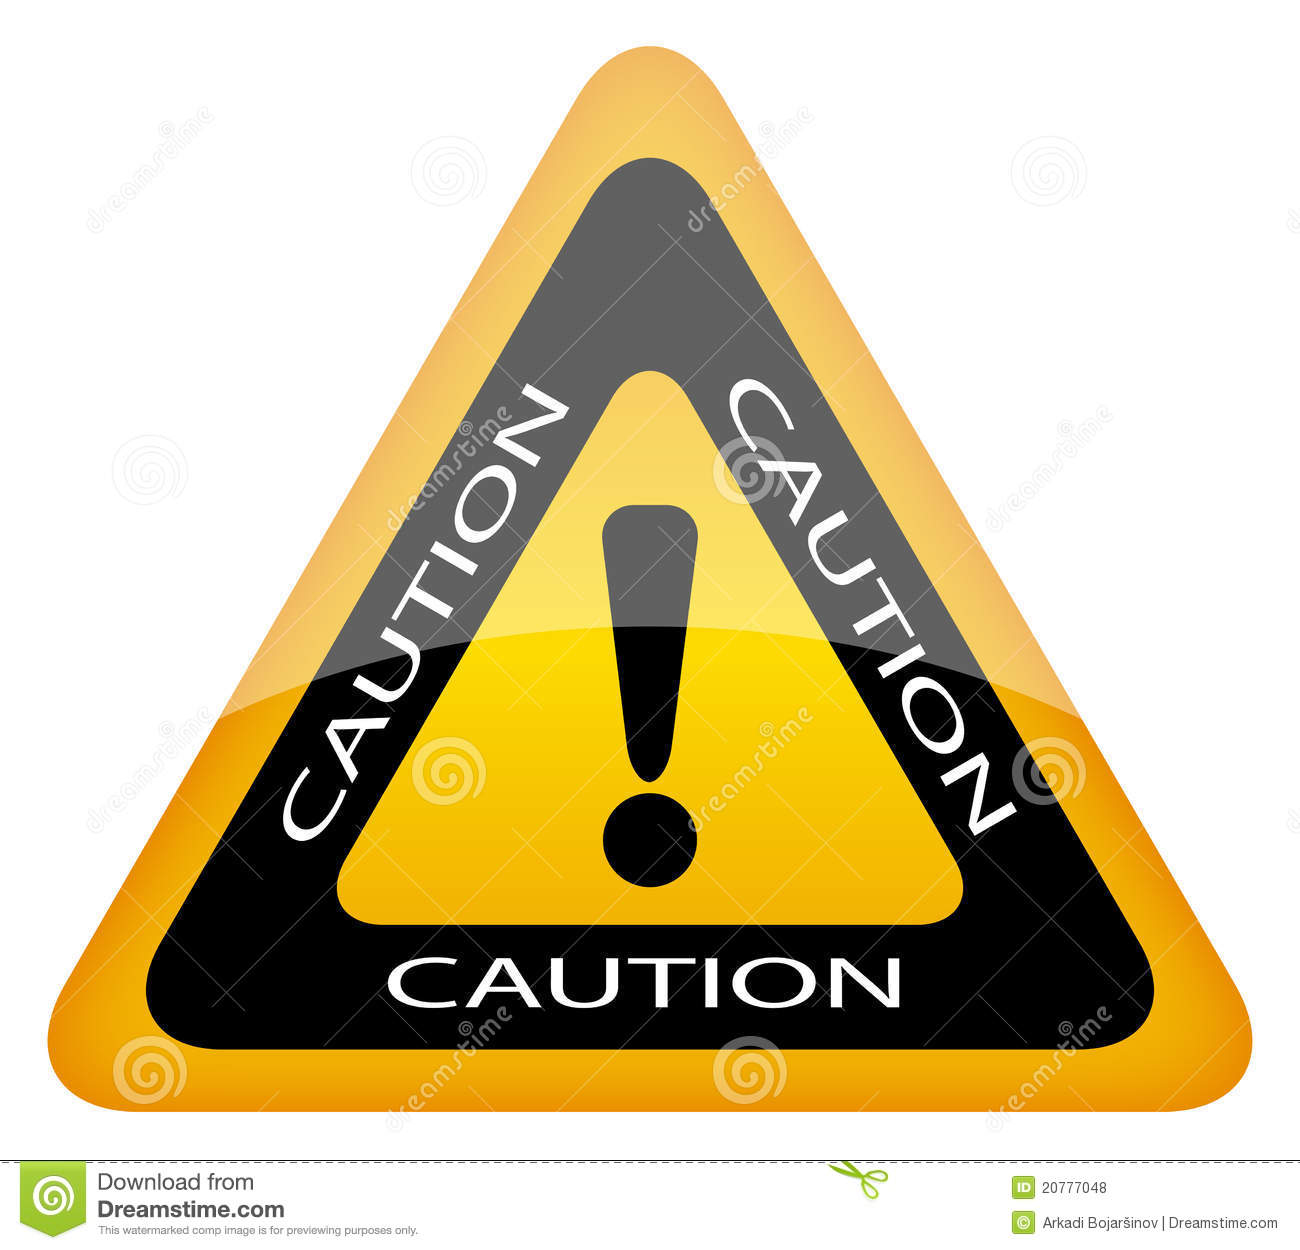 Caution sign stock vector. Illustration of dangerous ... | 1300 x 1250 jpeg 111kB